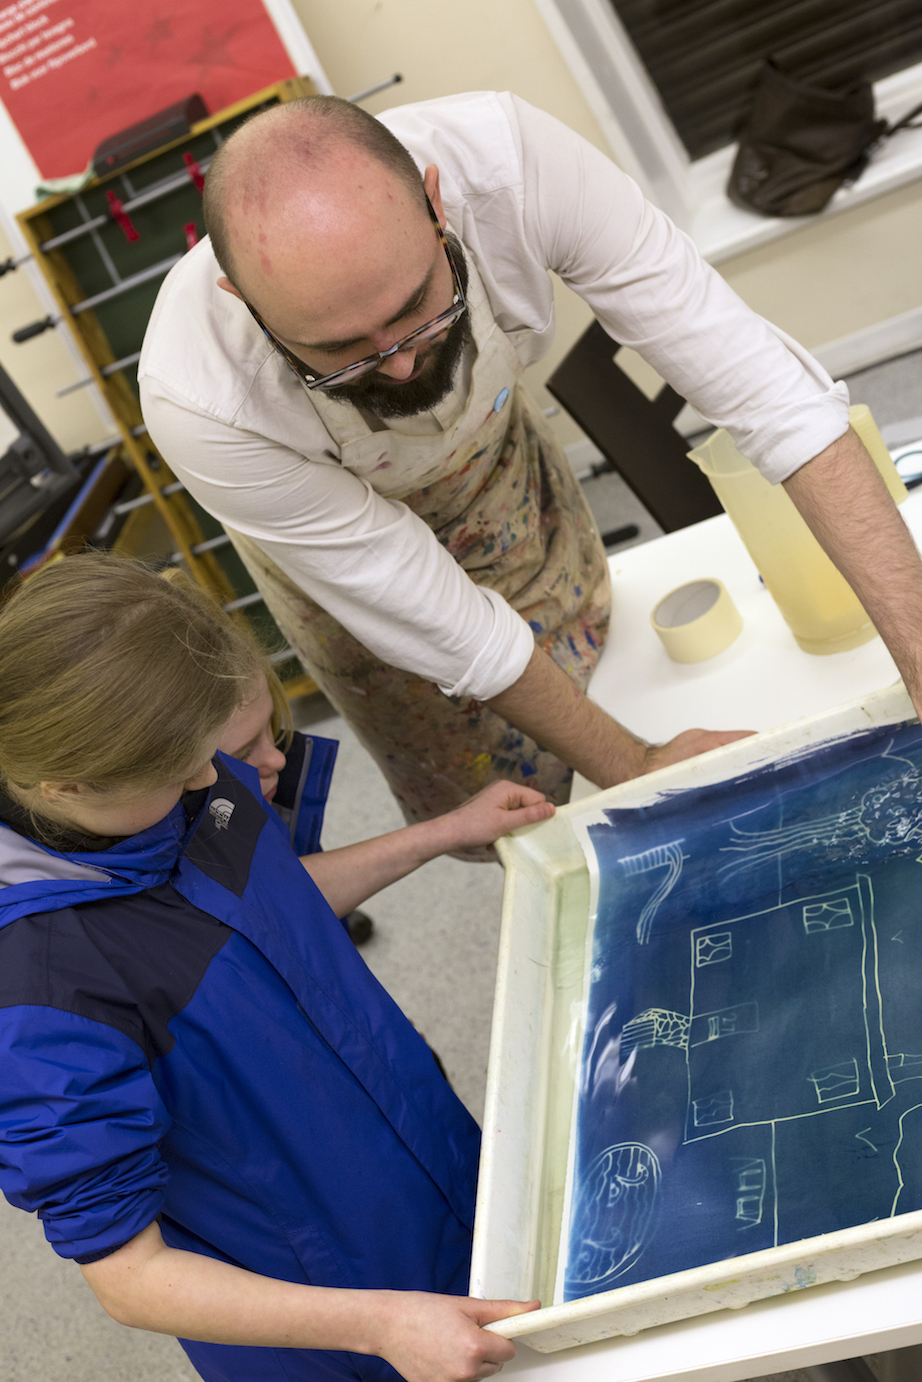 developing the plans into real blueprints (or cyanotypes) using a chemical solution